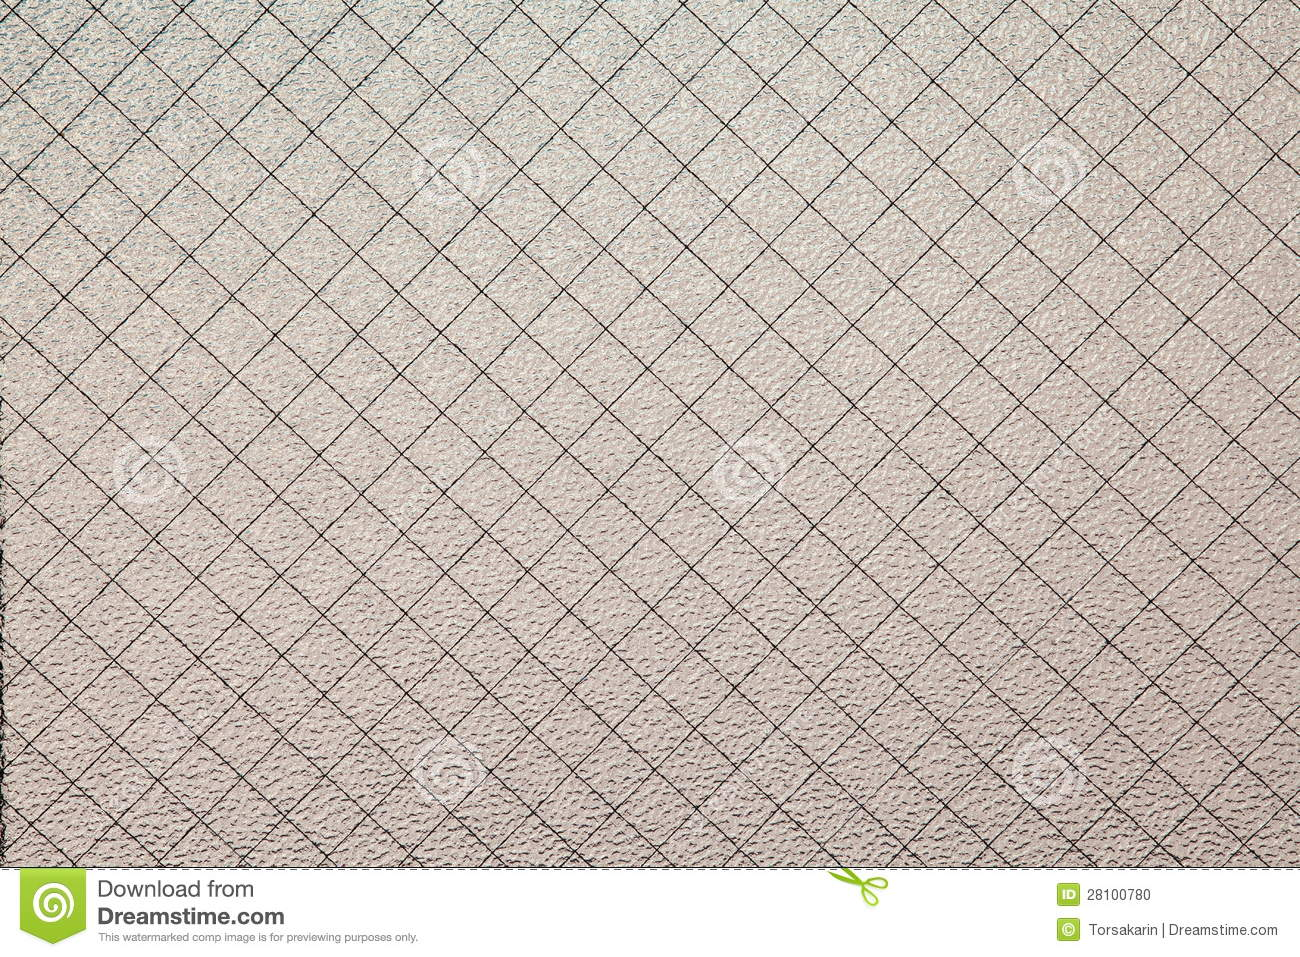 Safety Frosted Glass Texture Stock Images - 18 Photos